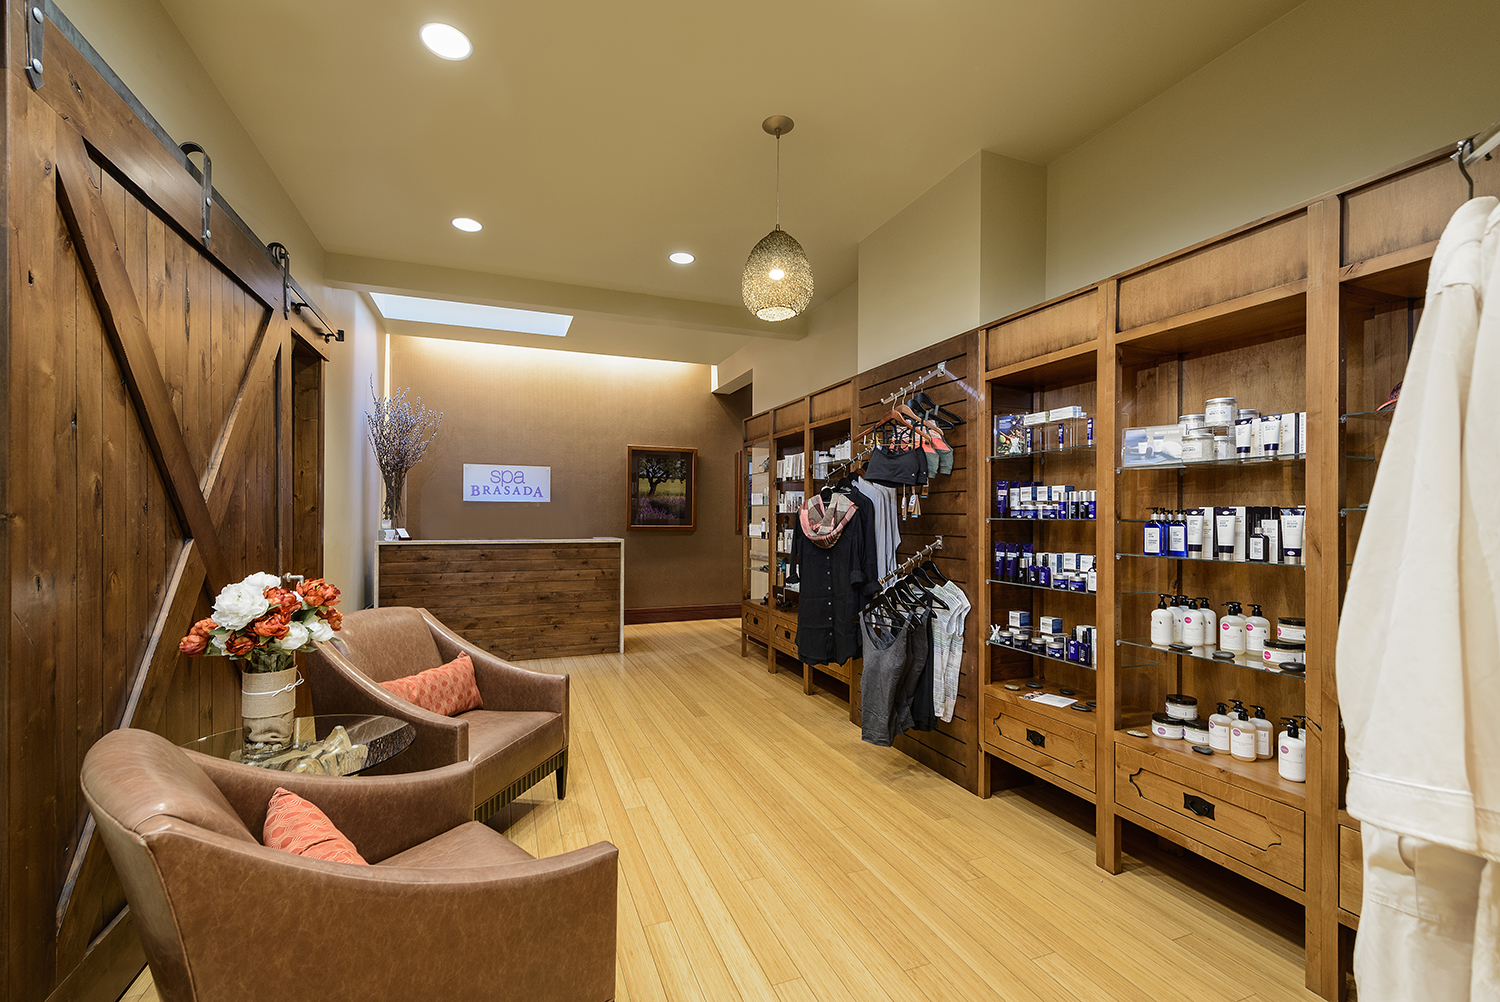 The check-in desk and retail shop at Spa Brasada.